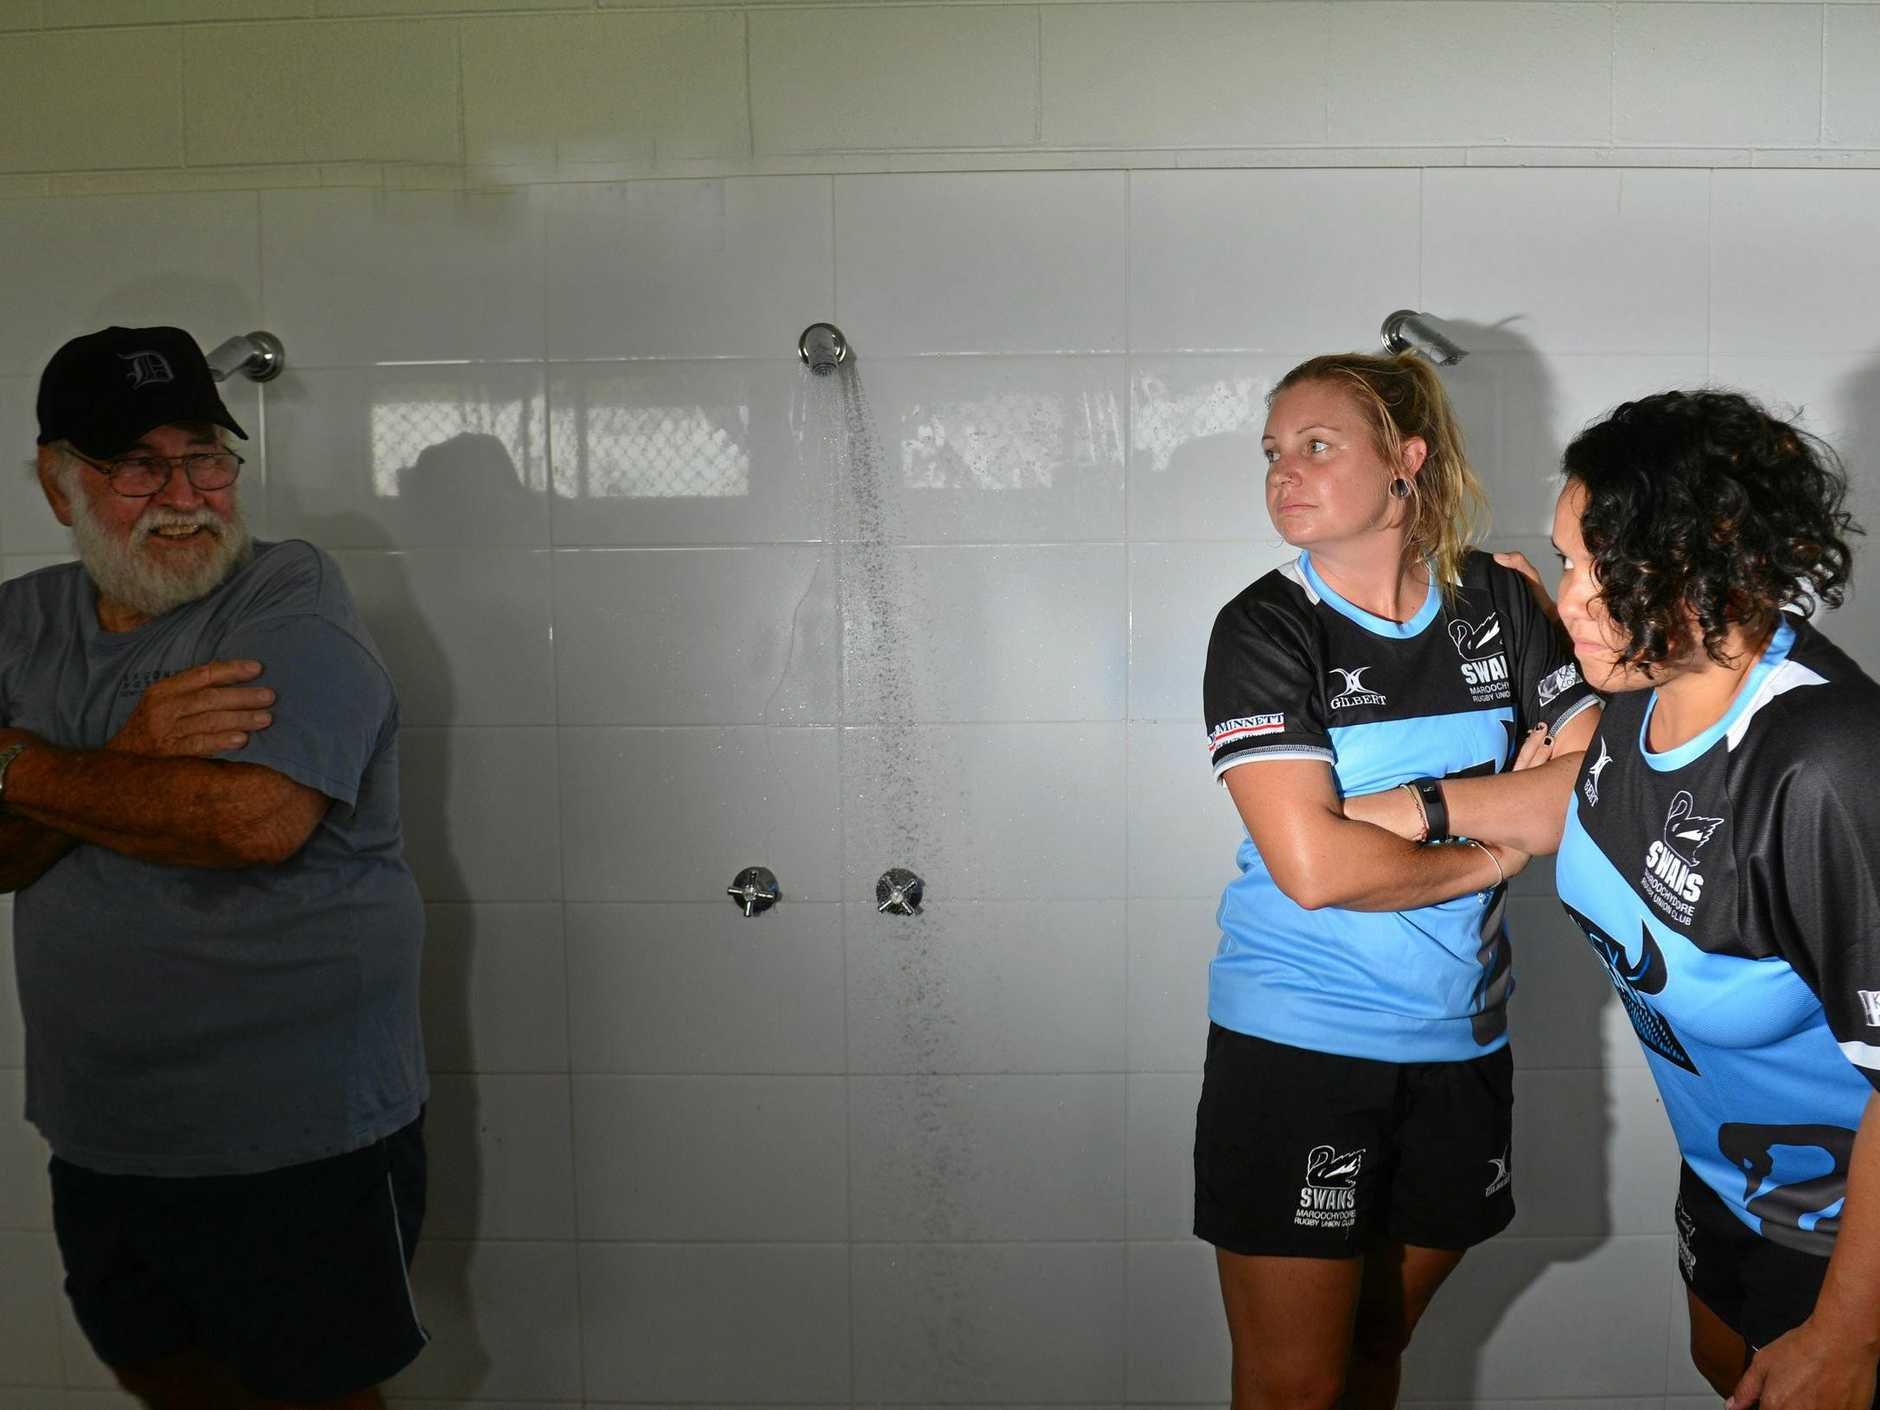 Maroochydore Rugby Union Club women's players Kara Reading and Chanelle Kawana share the club's only change rooms with groundskeeper Basil Harris.